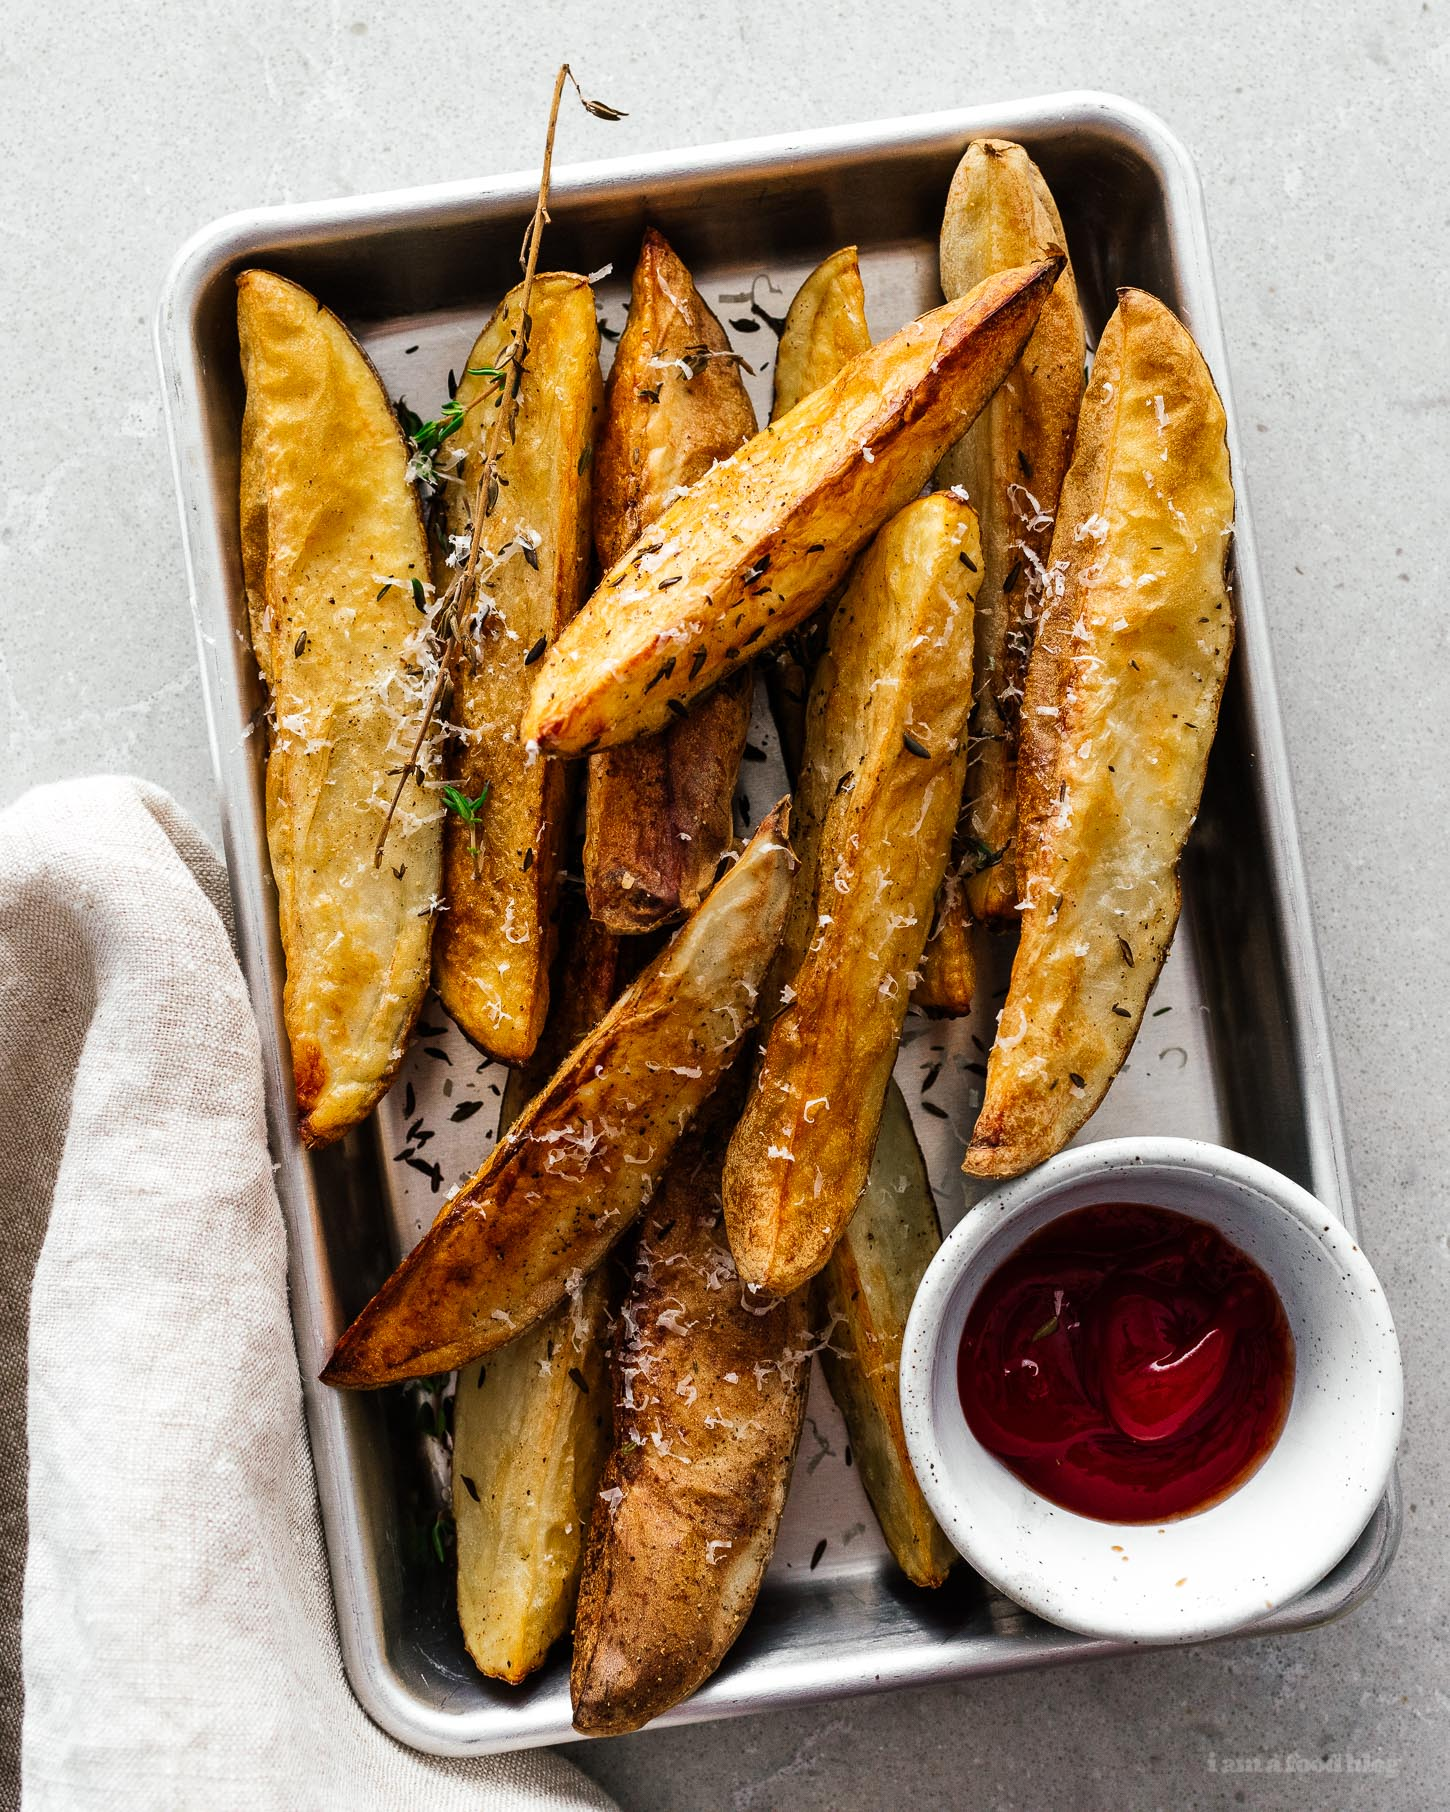 Crispy Air Fryer Parmesan and Thyme Roasted Wedge Fries | www.iamafoodblog.com